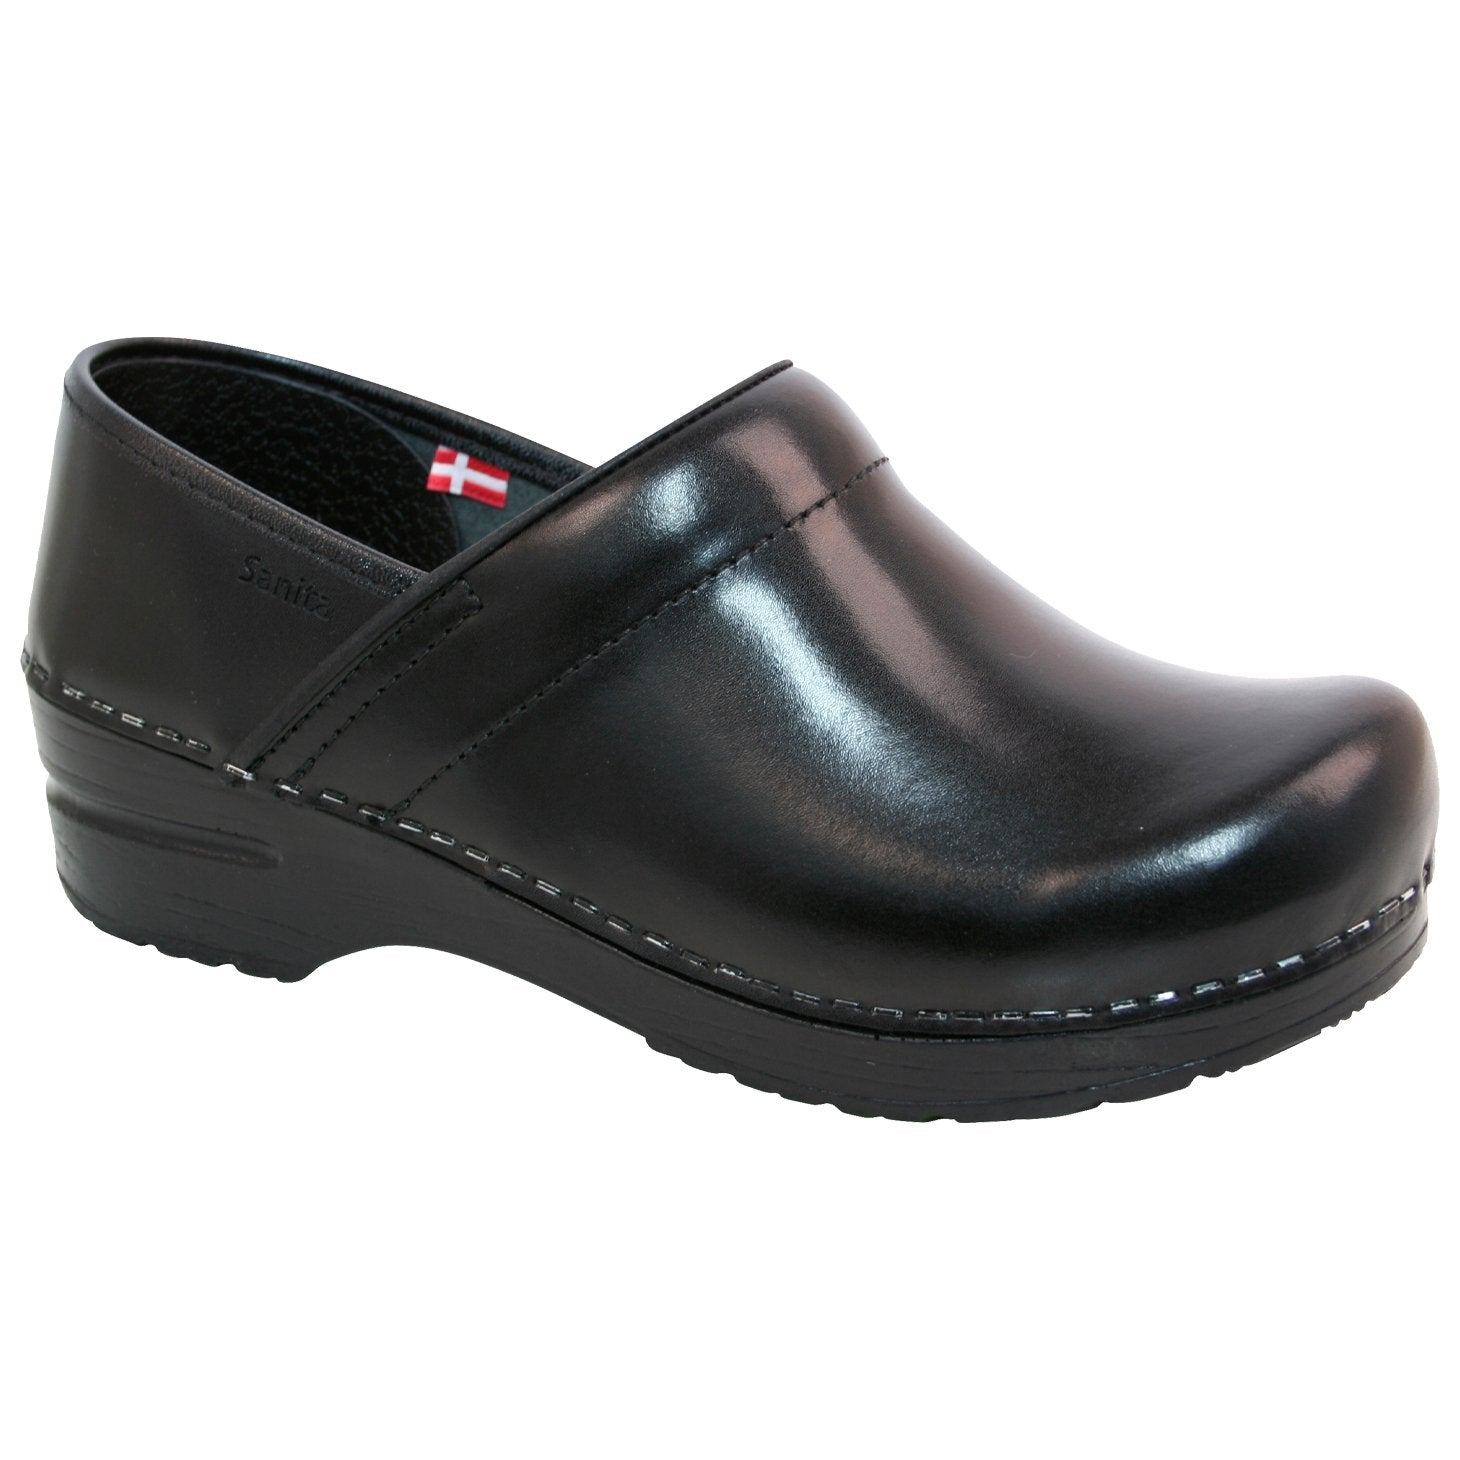 Pro. Cabrio Women's - Black - Second